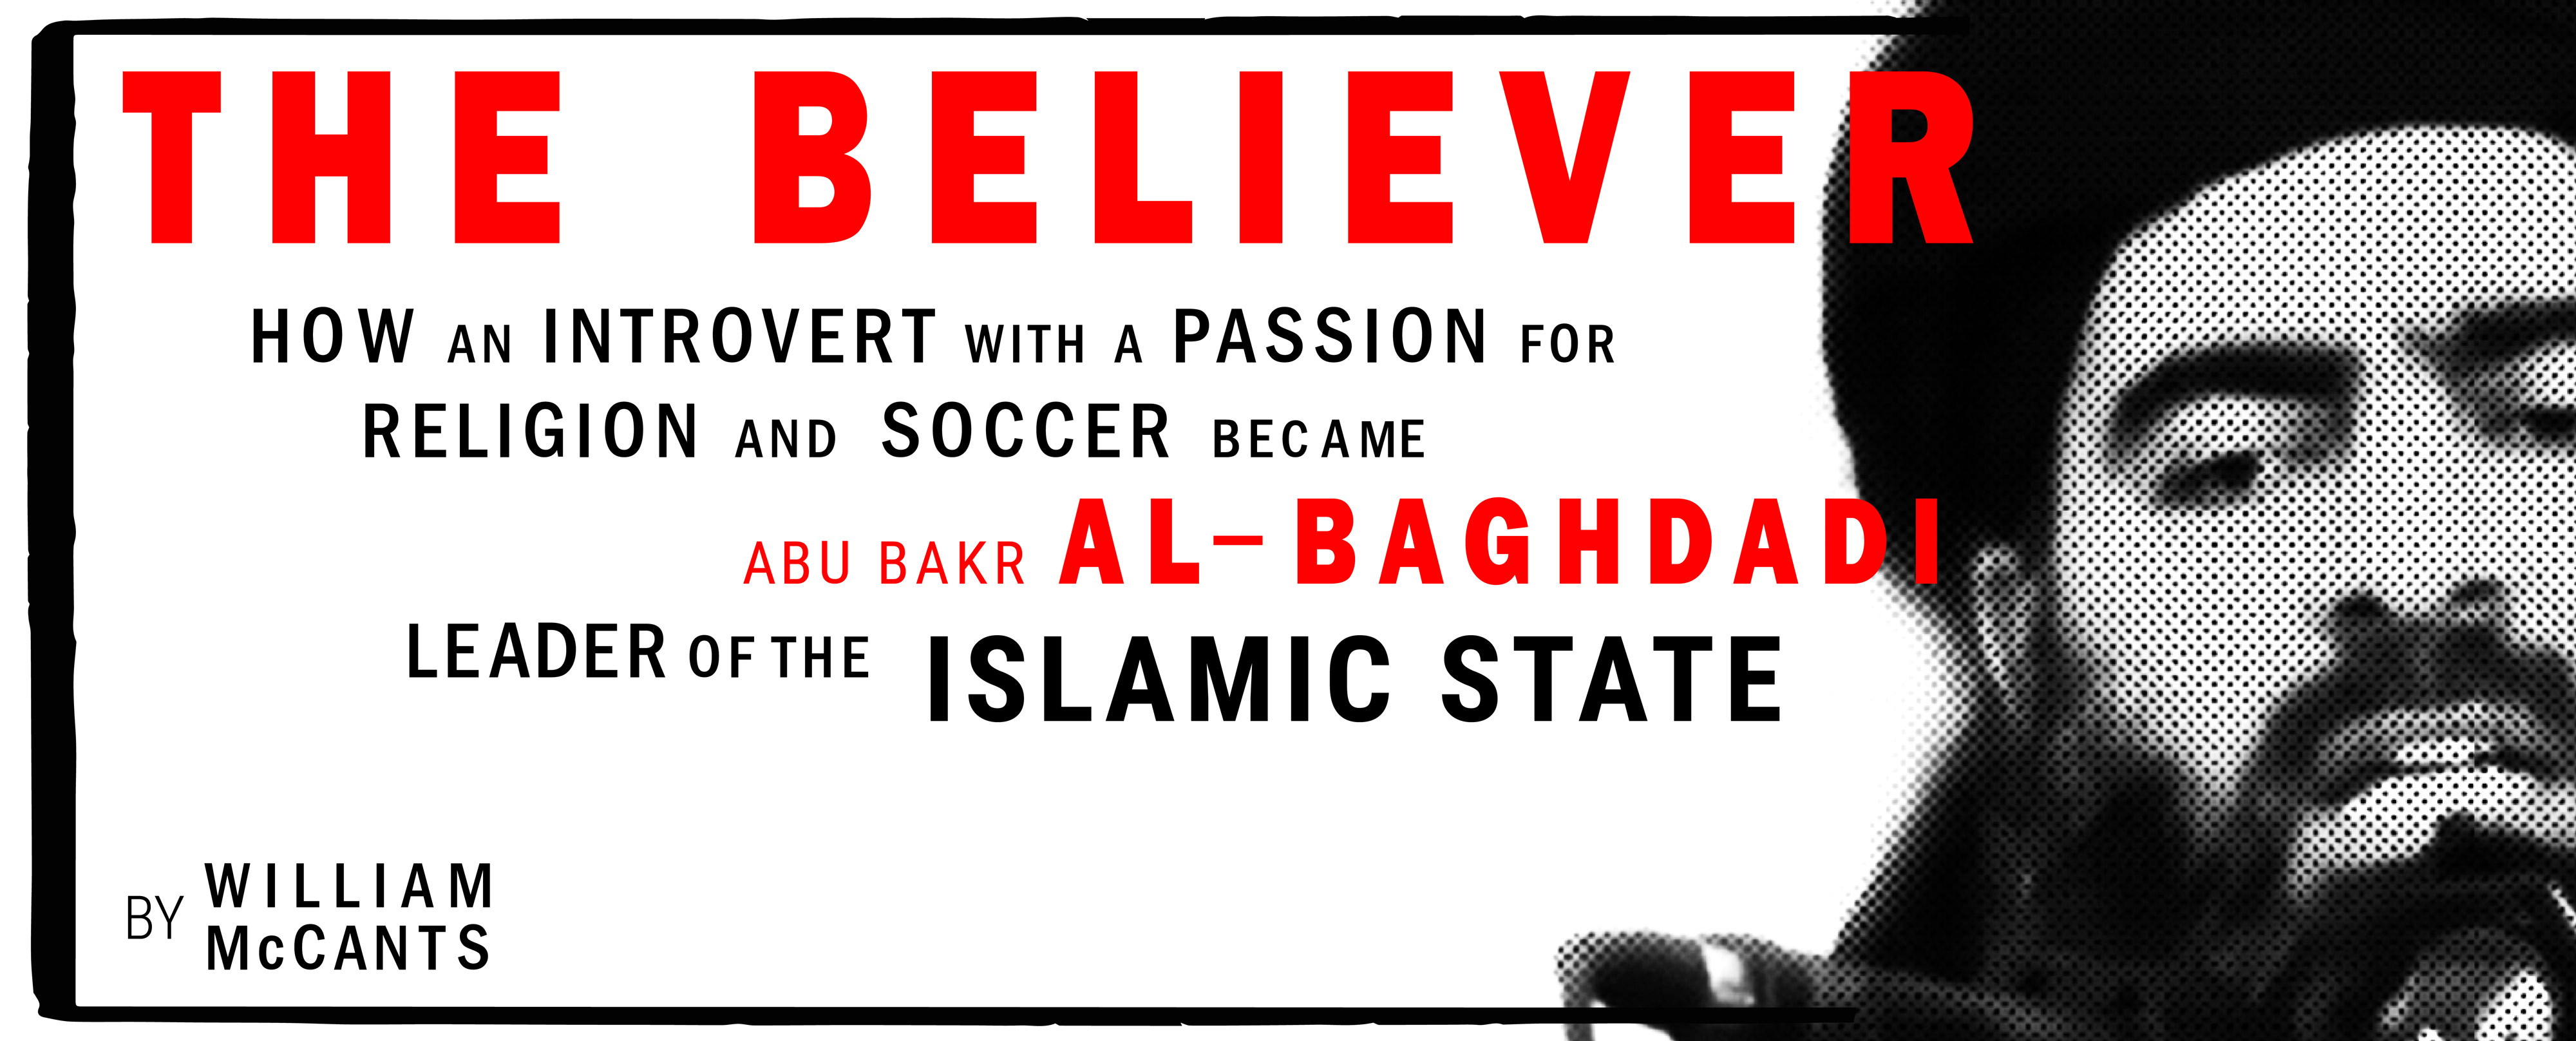 the believer how abu bakr al baghdadi became leader of the  the believer cover image